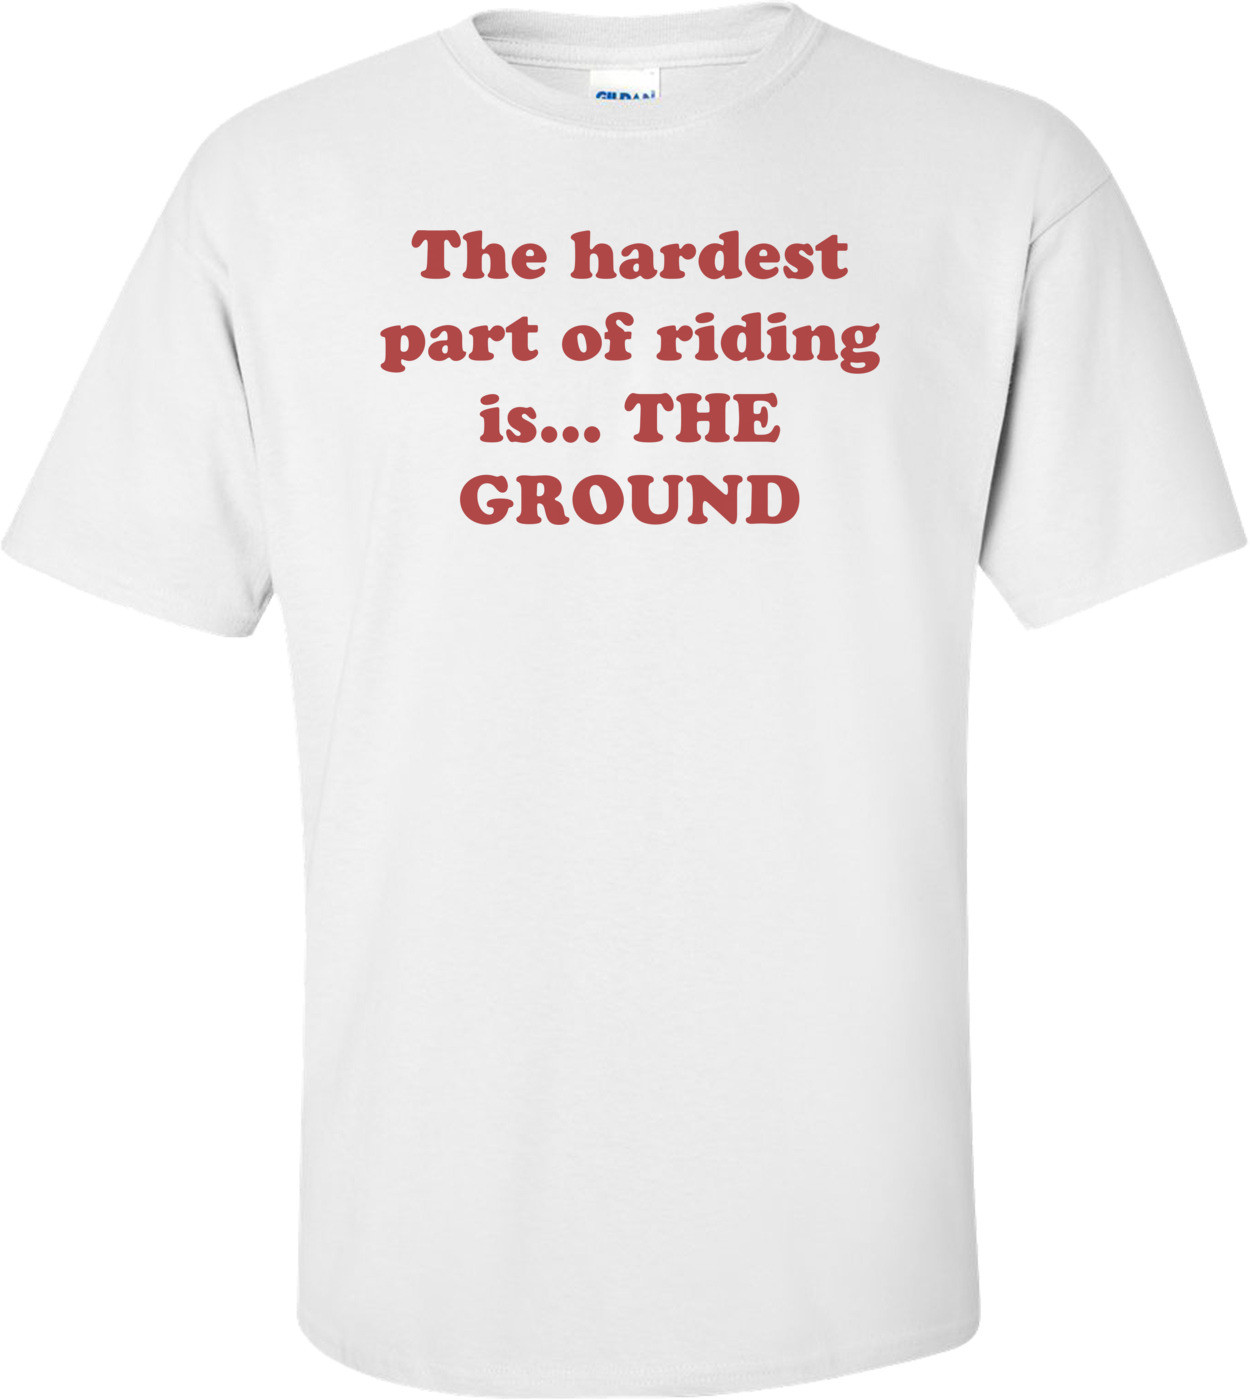 The hardest part of riding is... THE GROUND Shirt